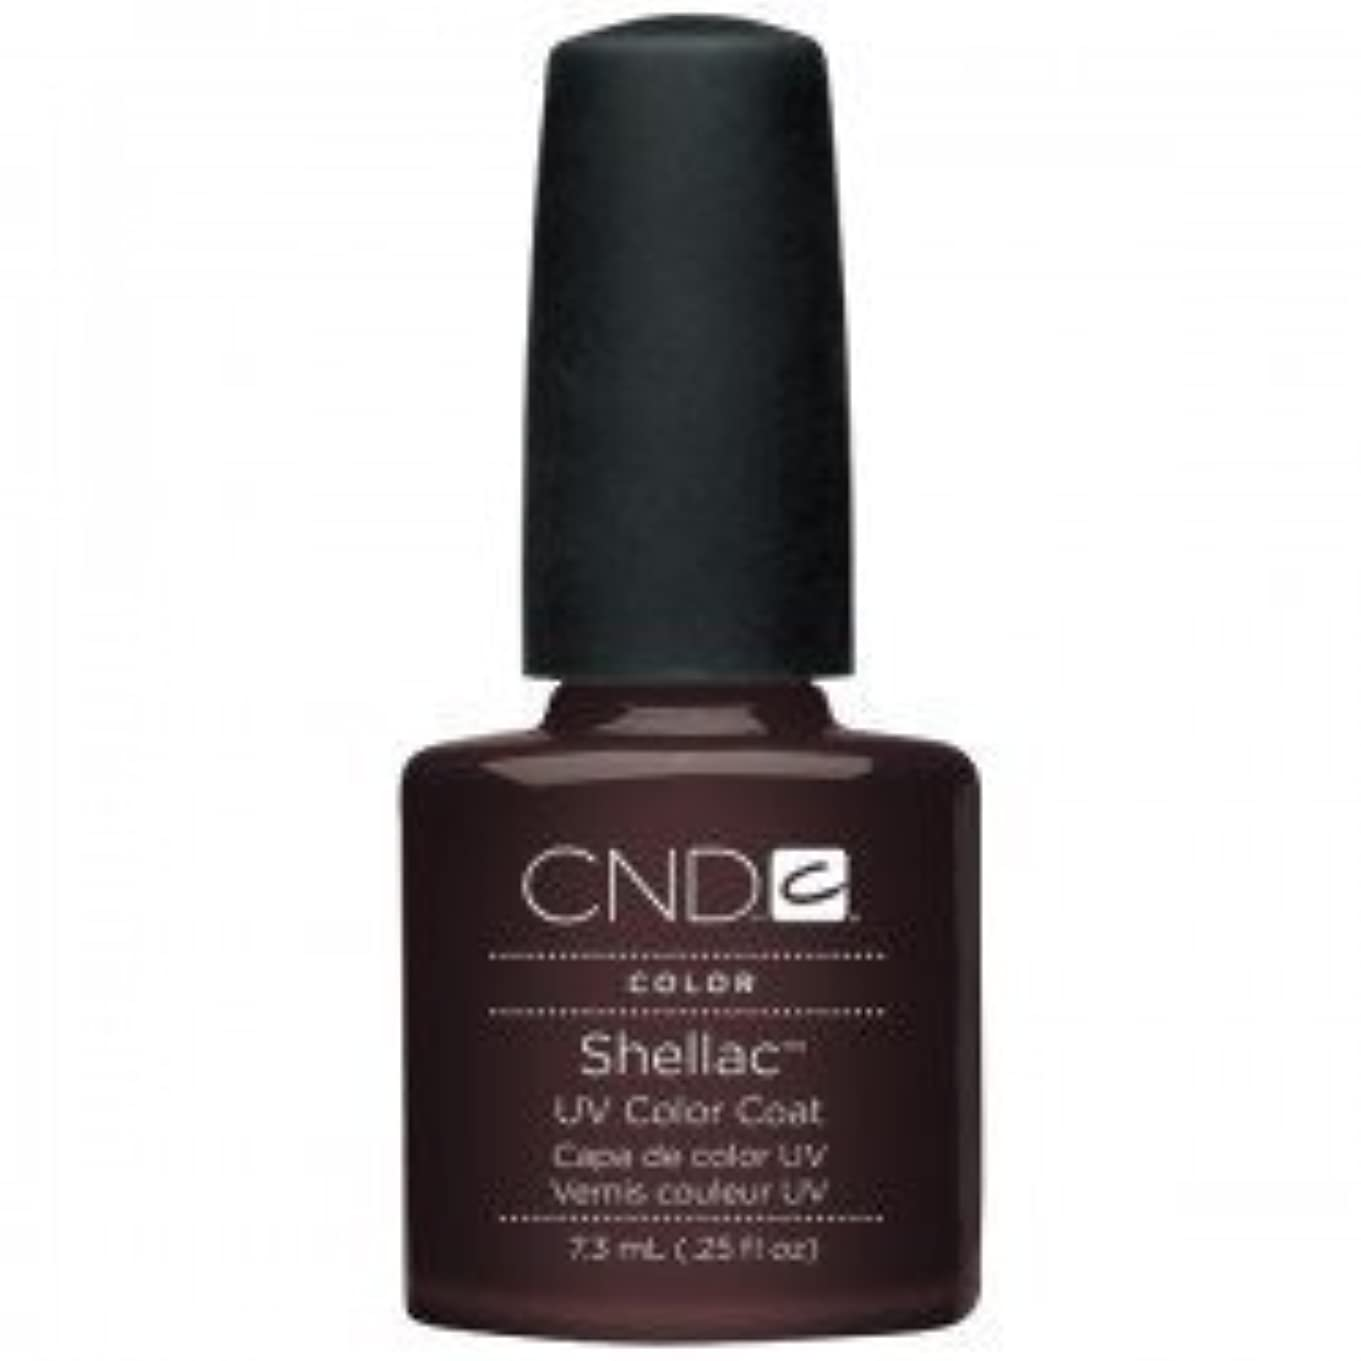 咲く四分円相談するNew CND Creative Shellac UV3 Nail Power Polish - Fedora 7.3ml by CND Creative Nail Designs